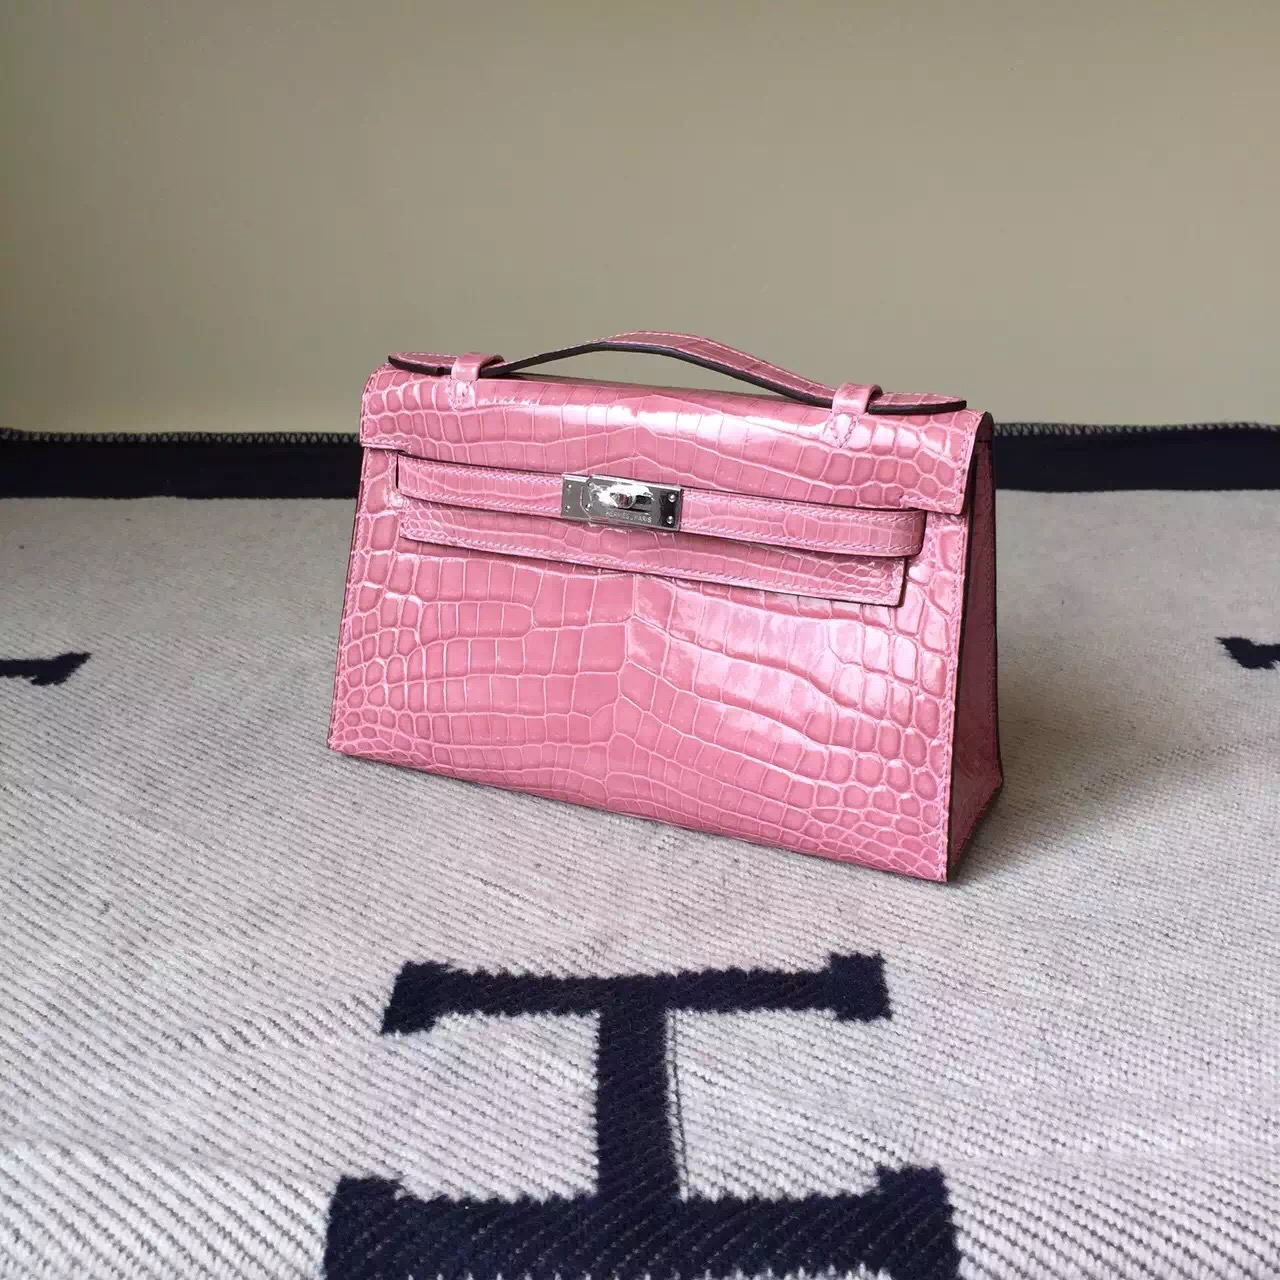 Hand Stitching Hermes Crocodile Leather Minikelly Bag 22CM in Pink